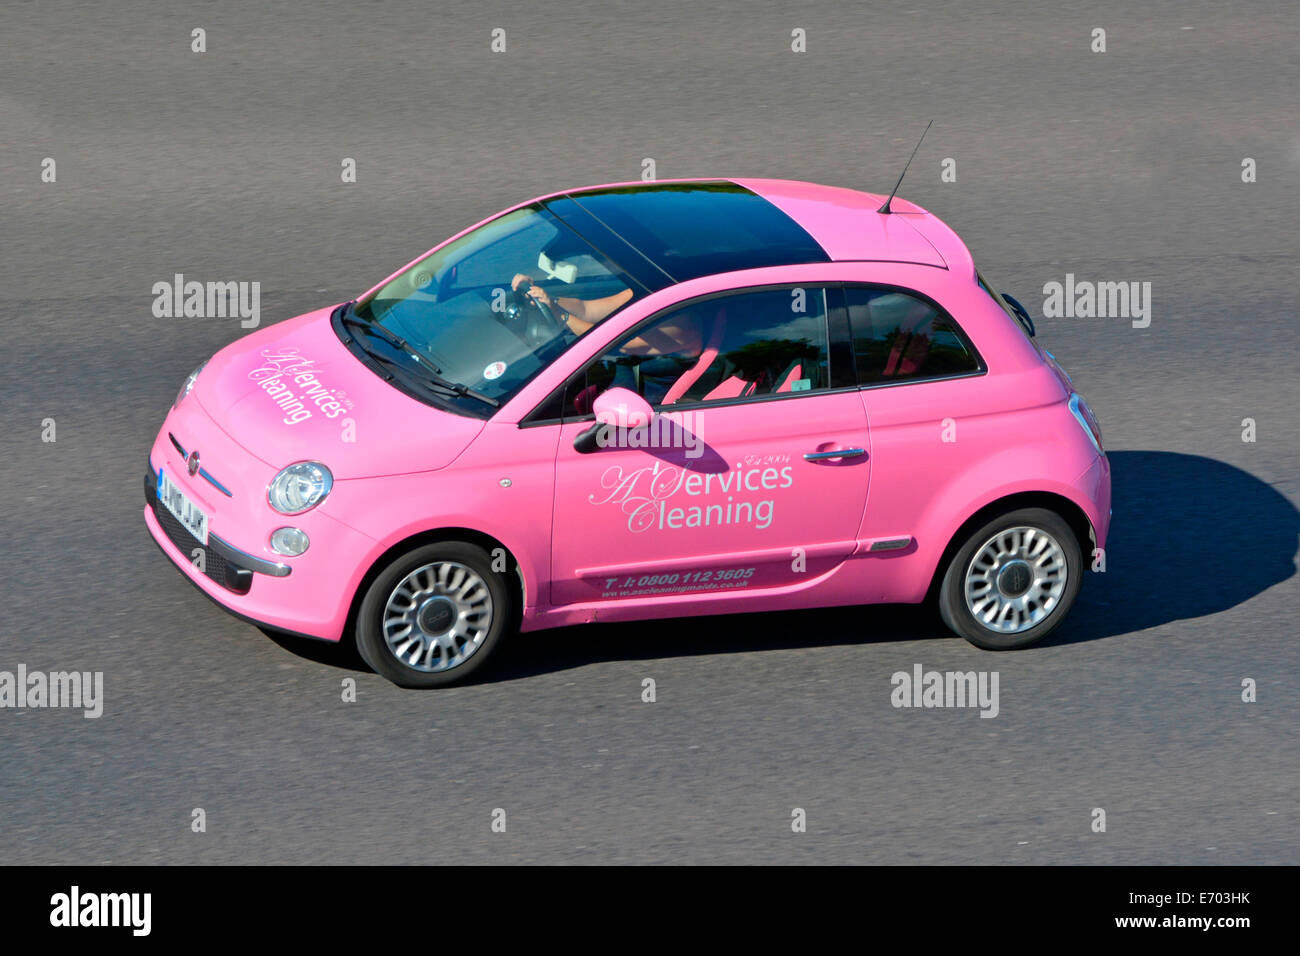 Pink Fiat car with advertising for cleaning services - Stock Image